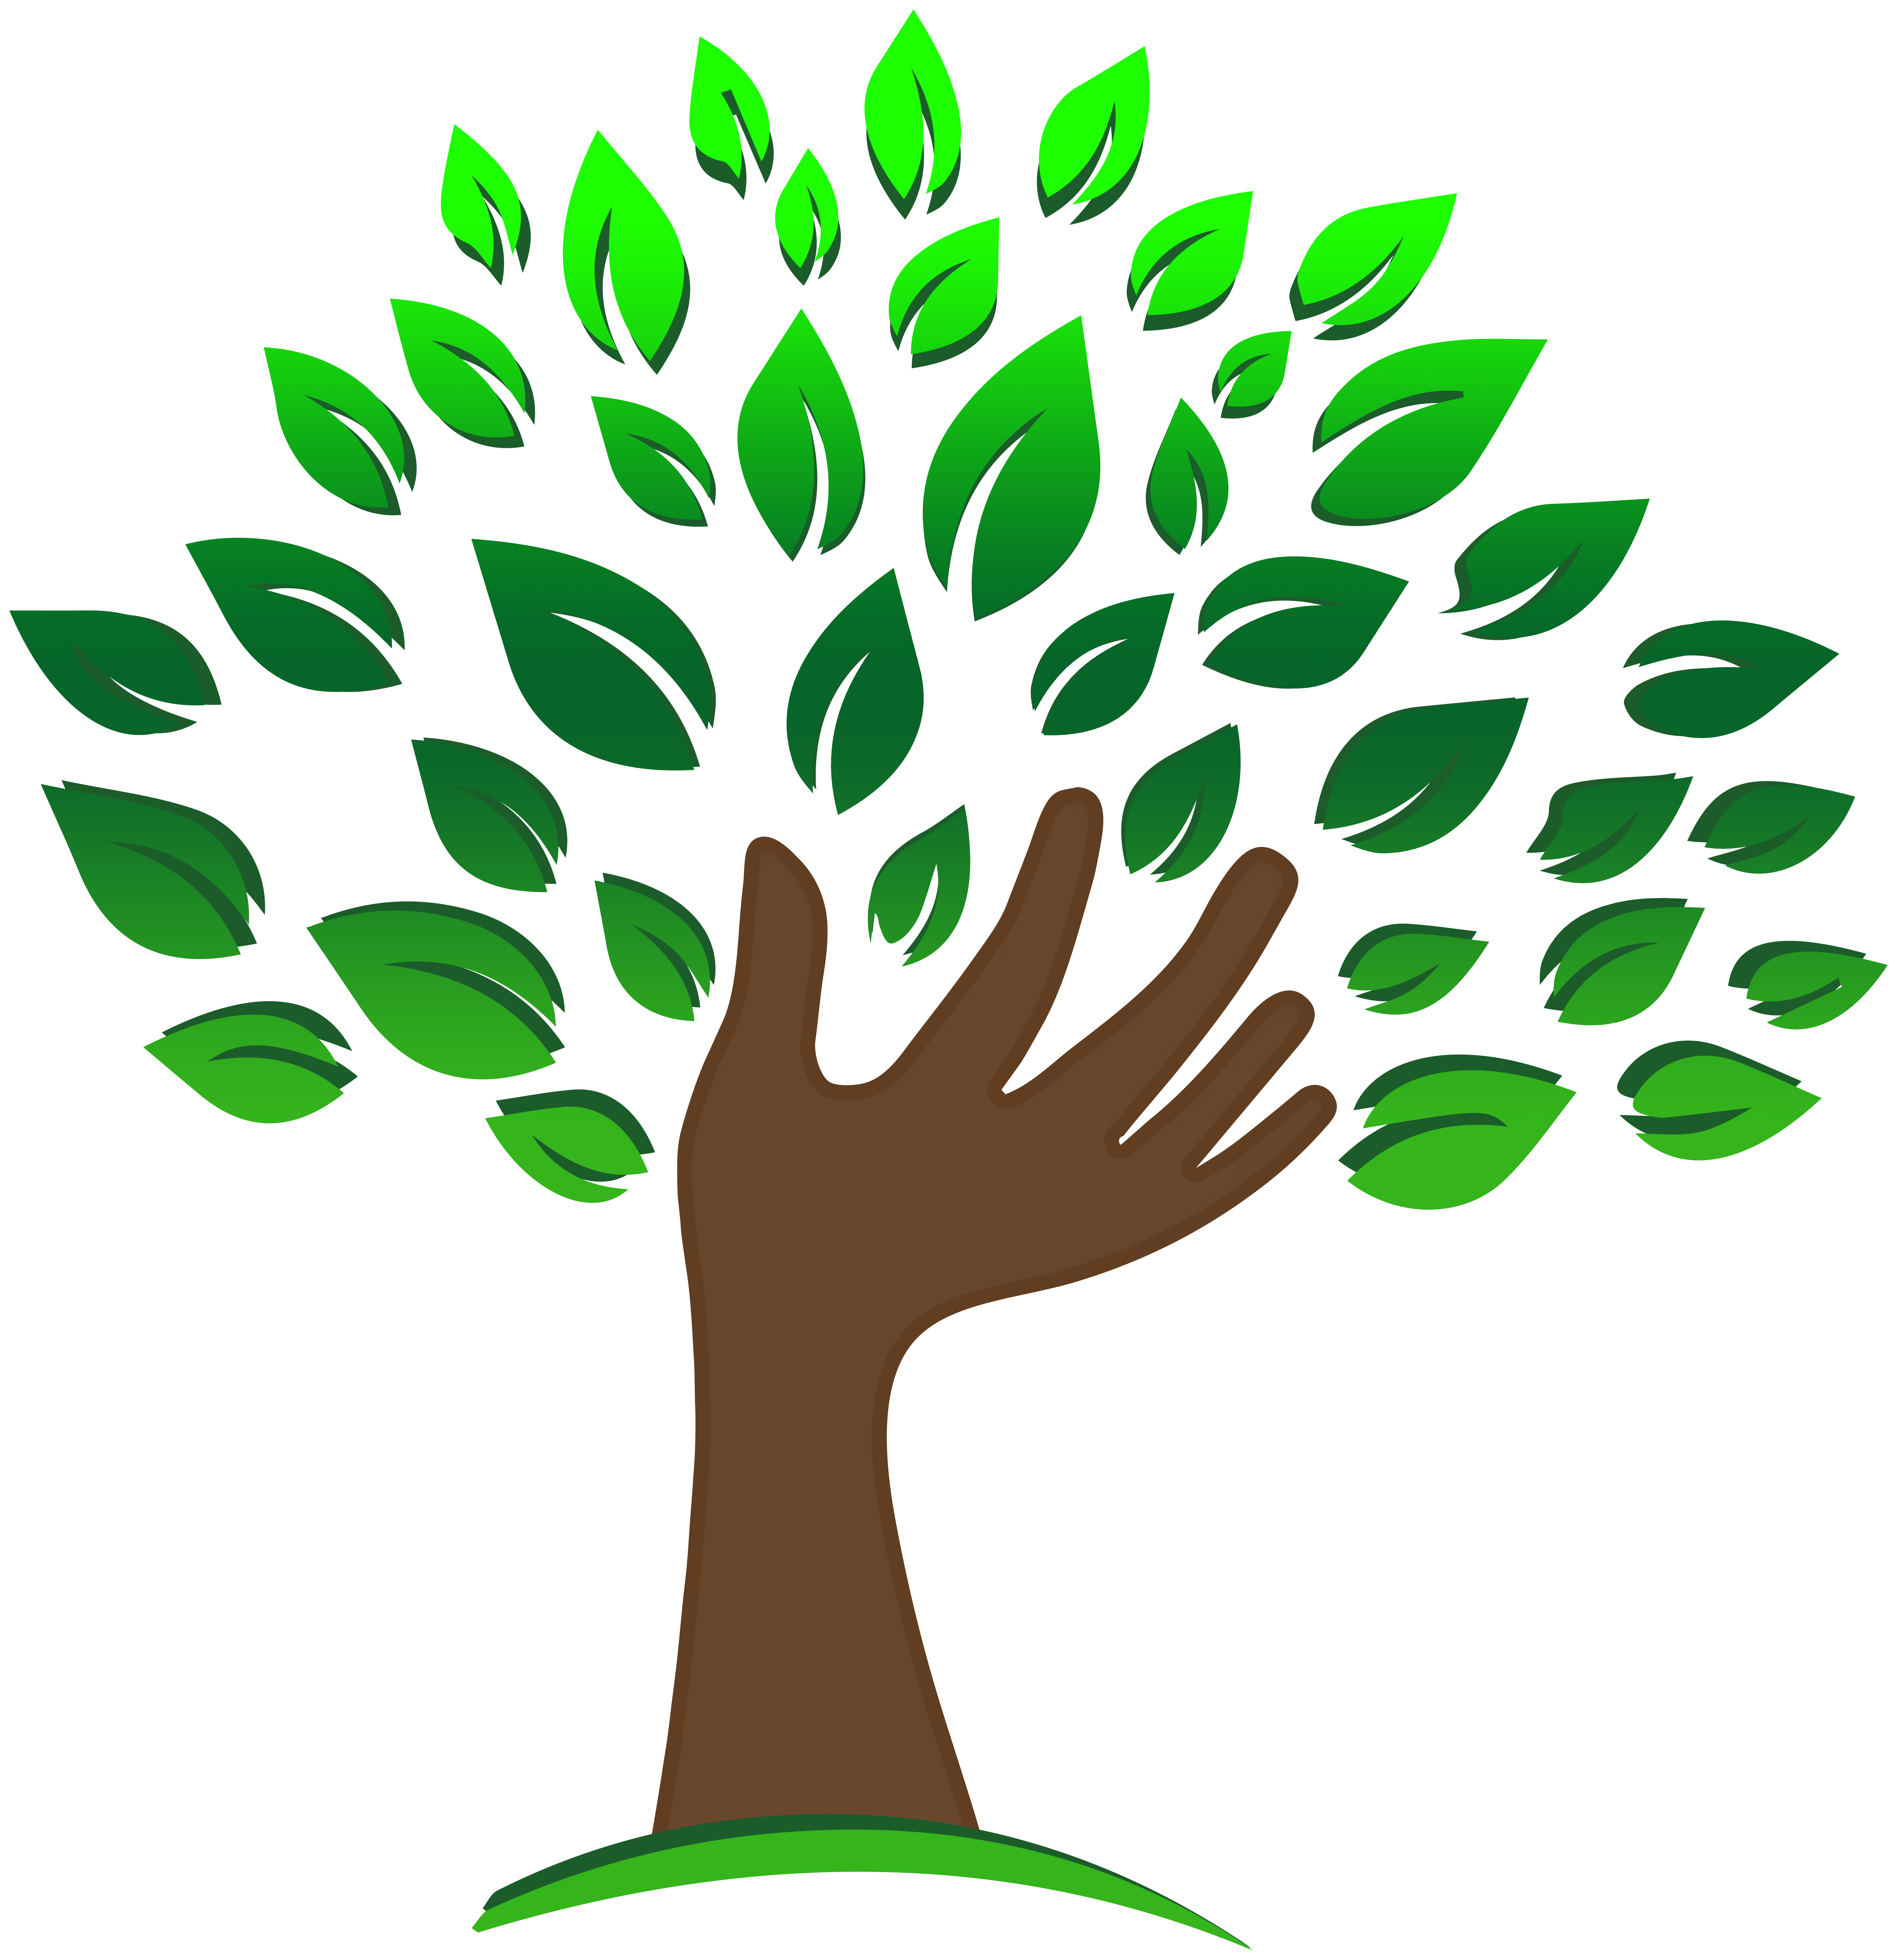 Tree and hands clipart jpg library Hand Tree PNG Clipart - Best WEB Clipart jpg library